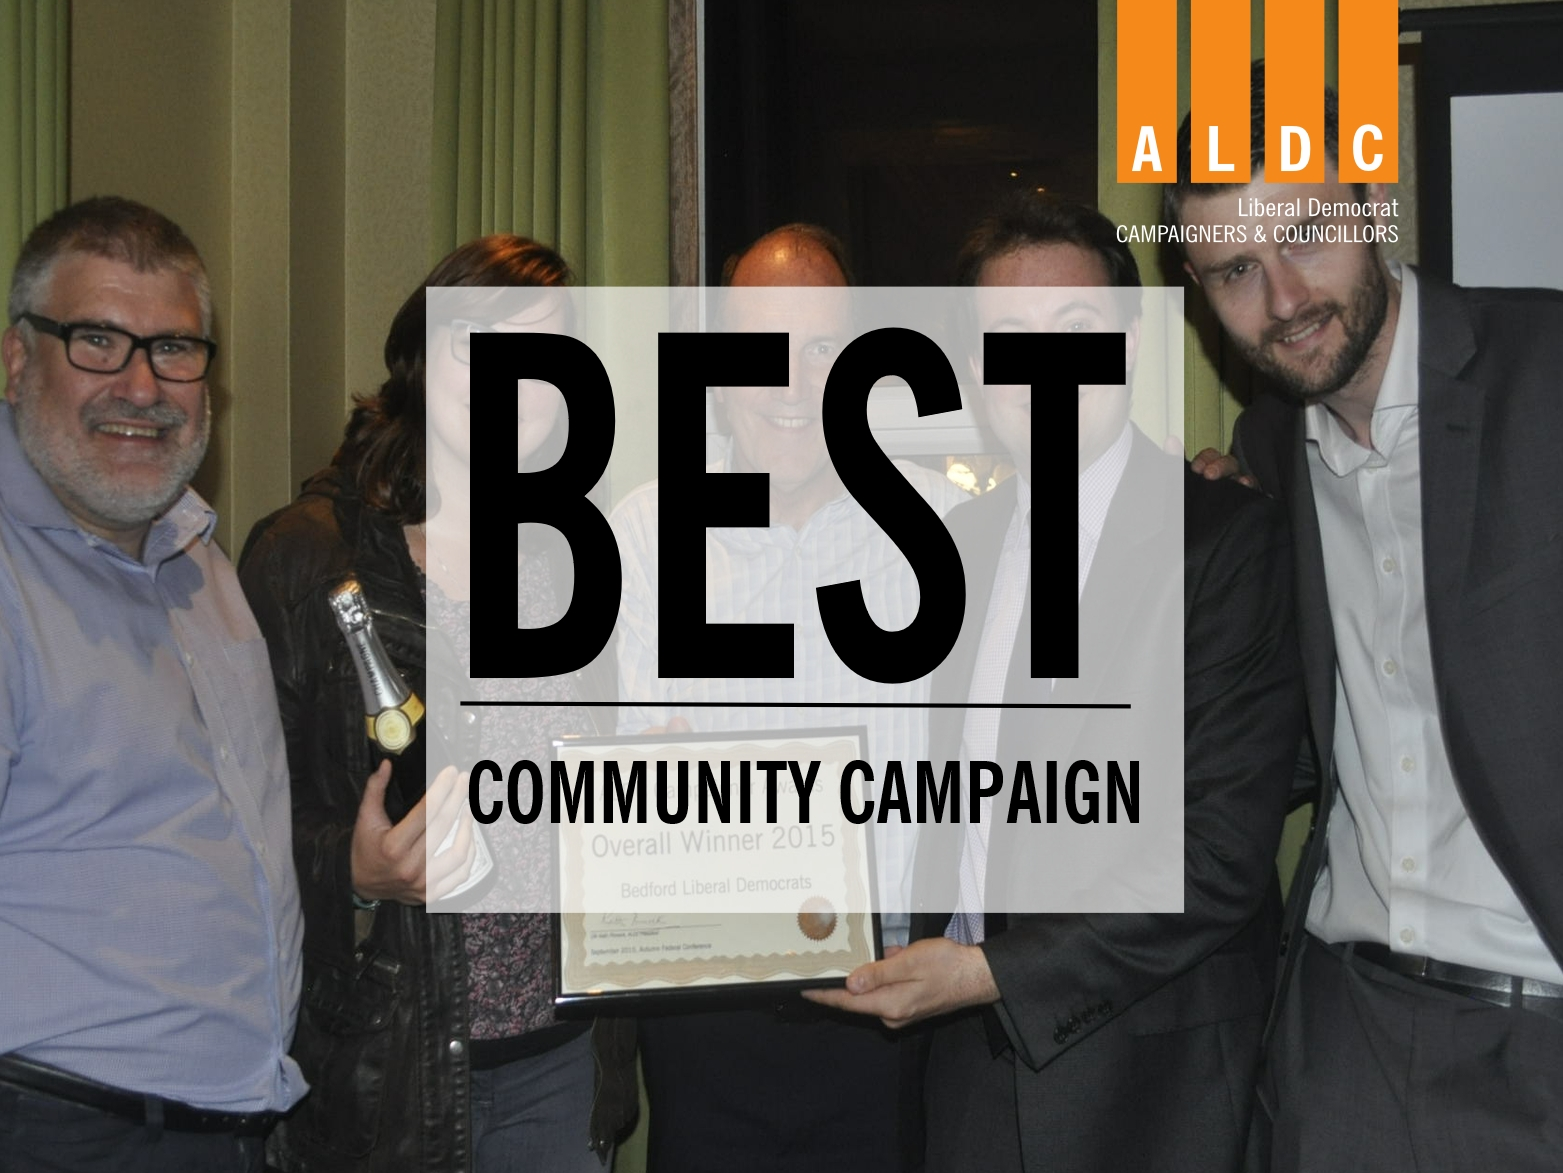 Campaigner Awards: Best Community Campaign